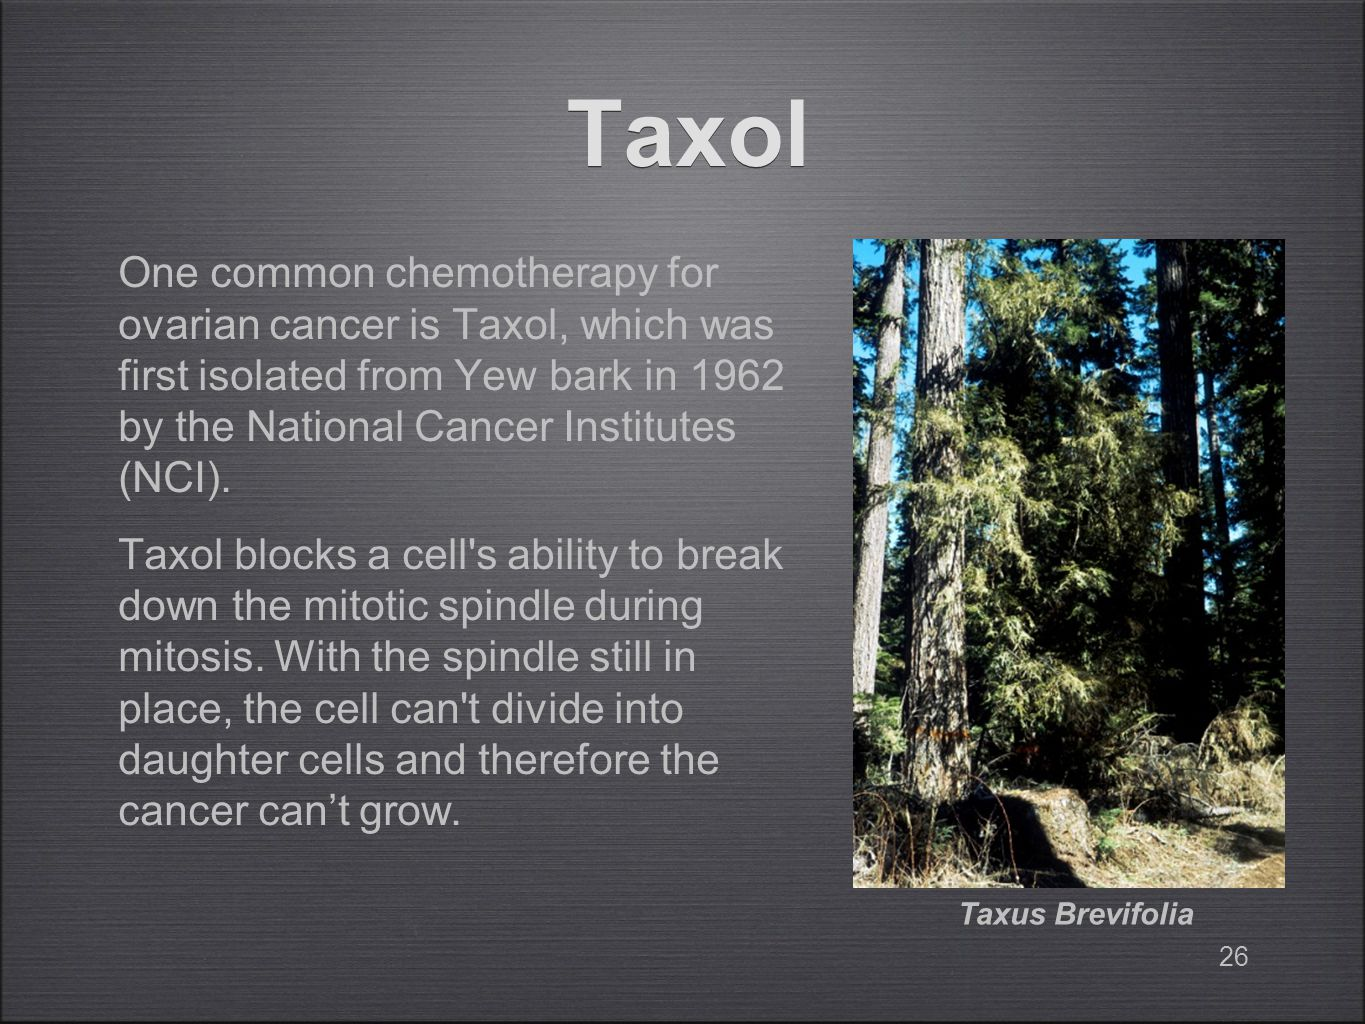 Taxol One common chemotherapy for ovarian cancer is Taxol, which was first isolated from Yew bark in 1962 by the National Cancer Institutes (NCI).